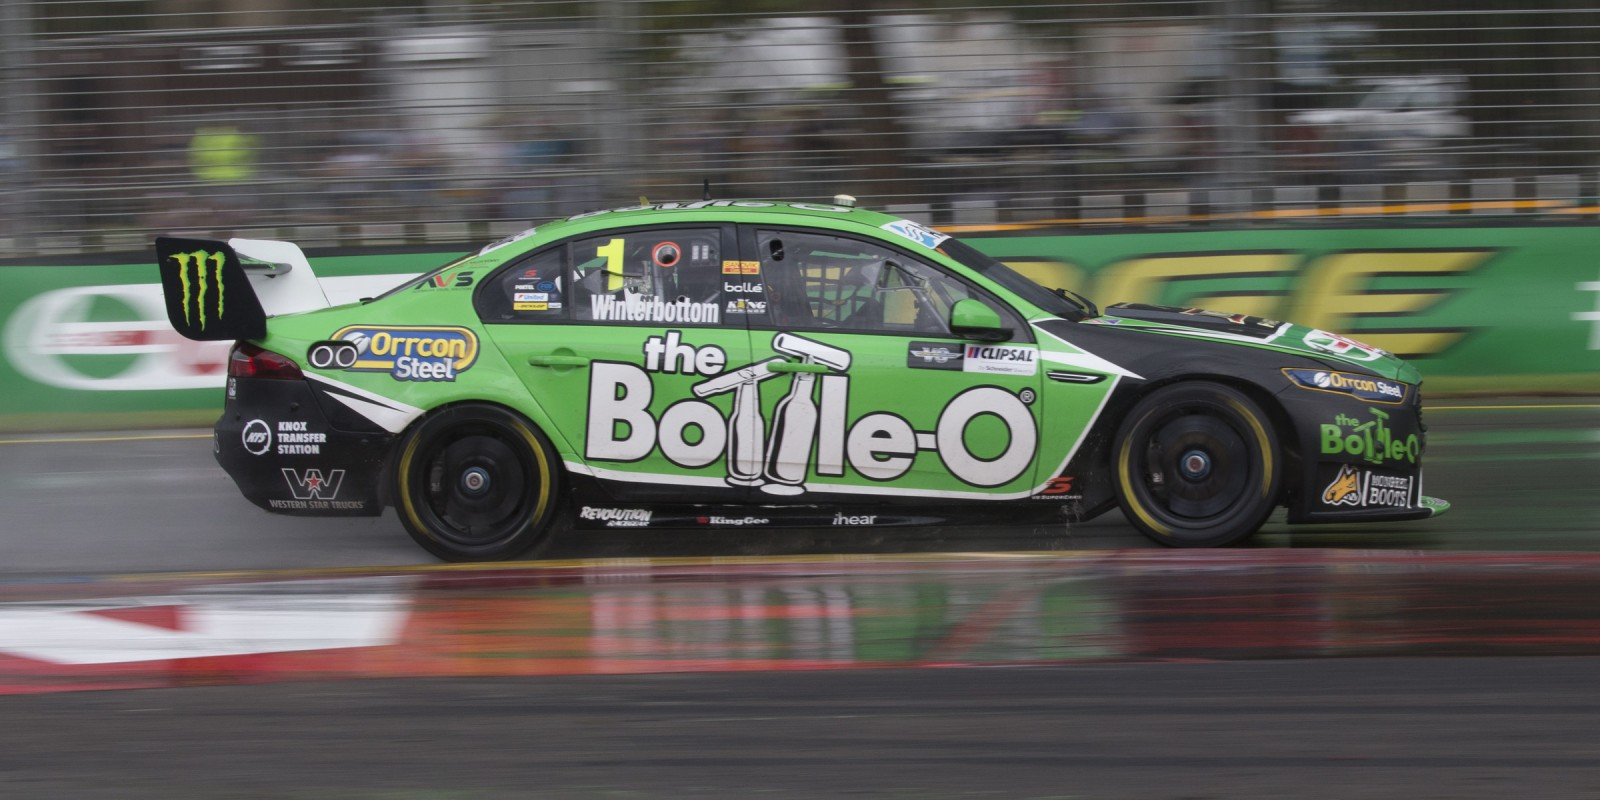 Monster Energy Racing's Mark Winterbottom at the 2016 Clipsal 500